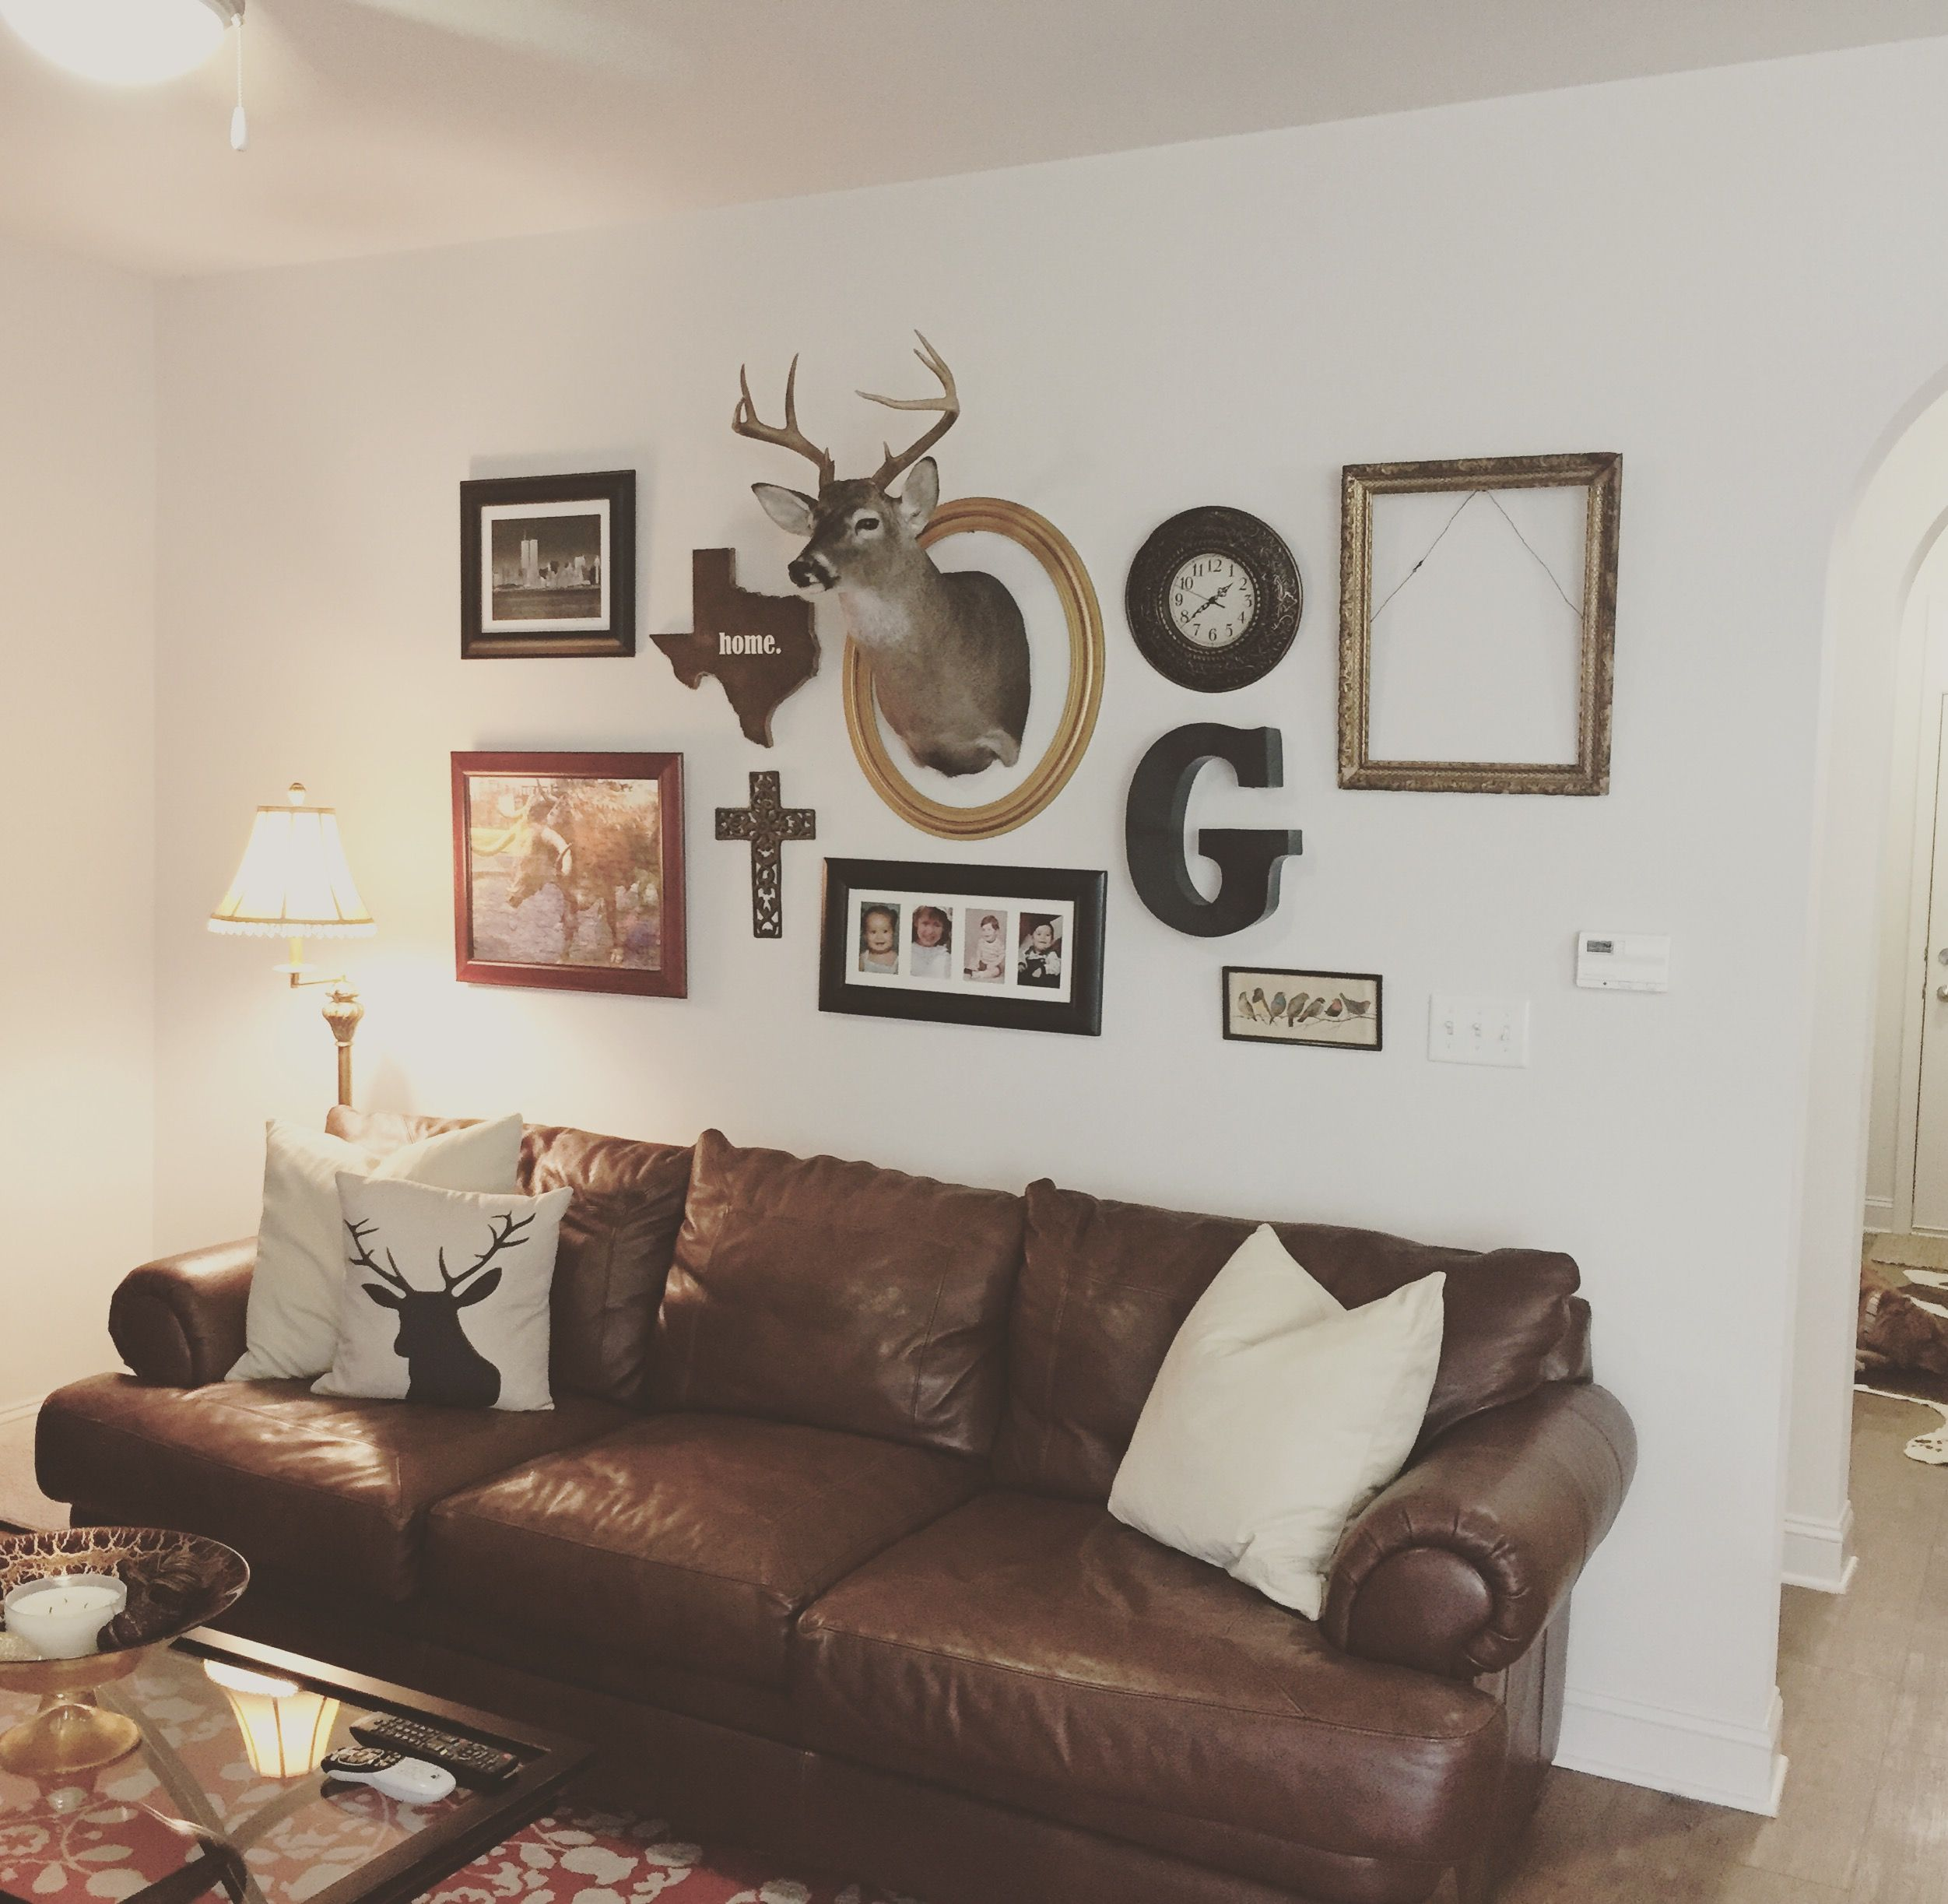 Eclectic Wall Decor Using Deer Head Deerhead Funwall